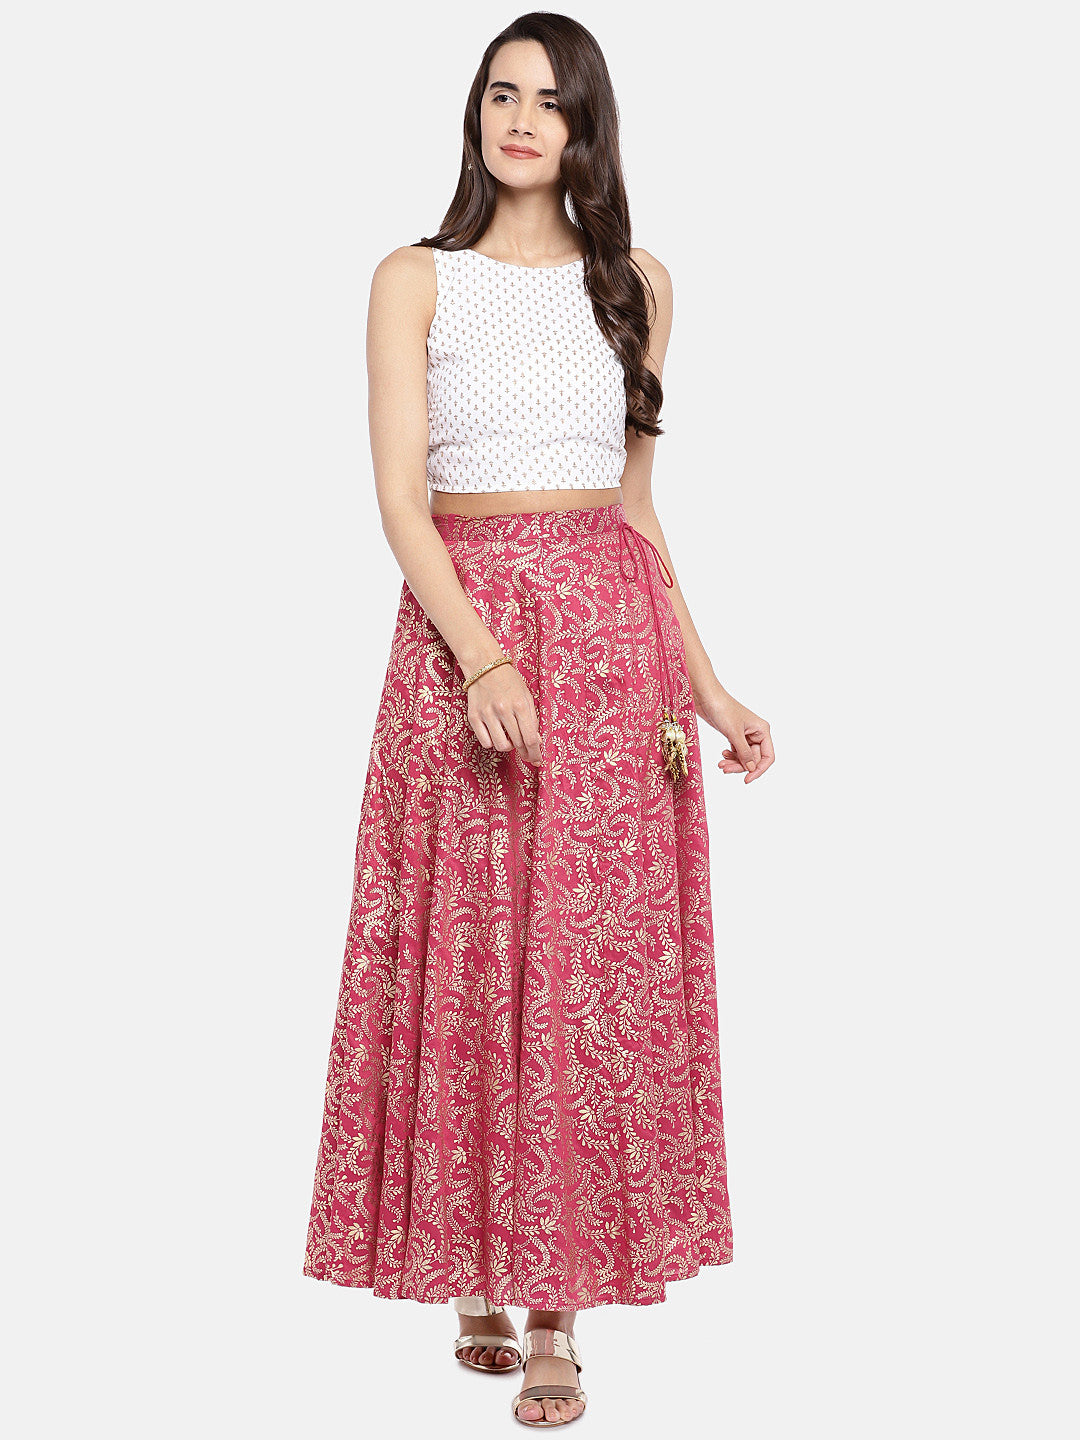 Pink & Gold-Toned Printed Flared Skirt-4